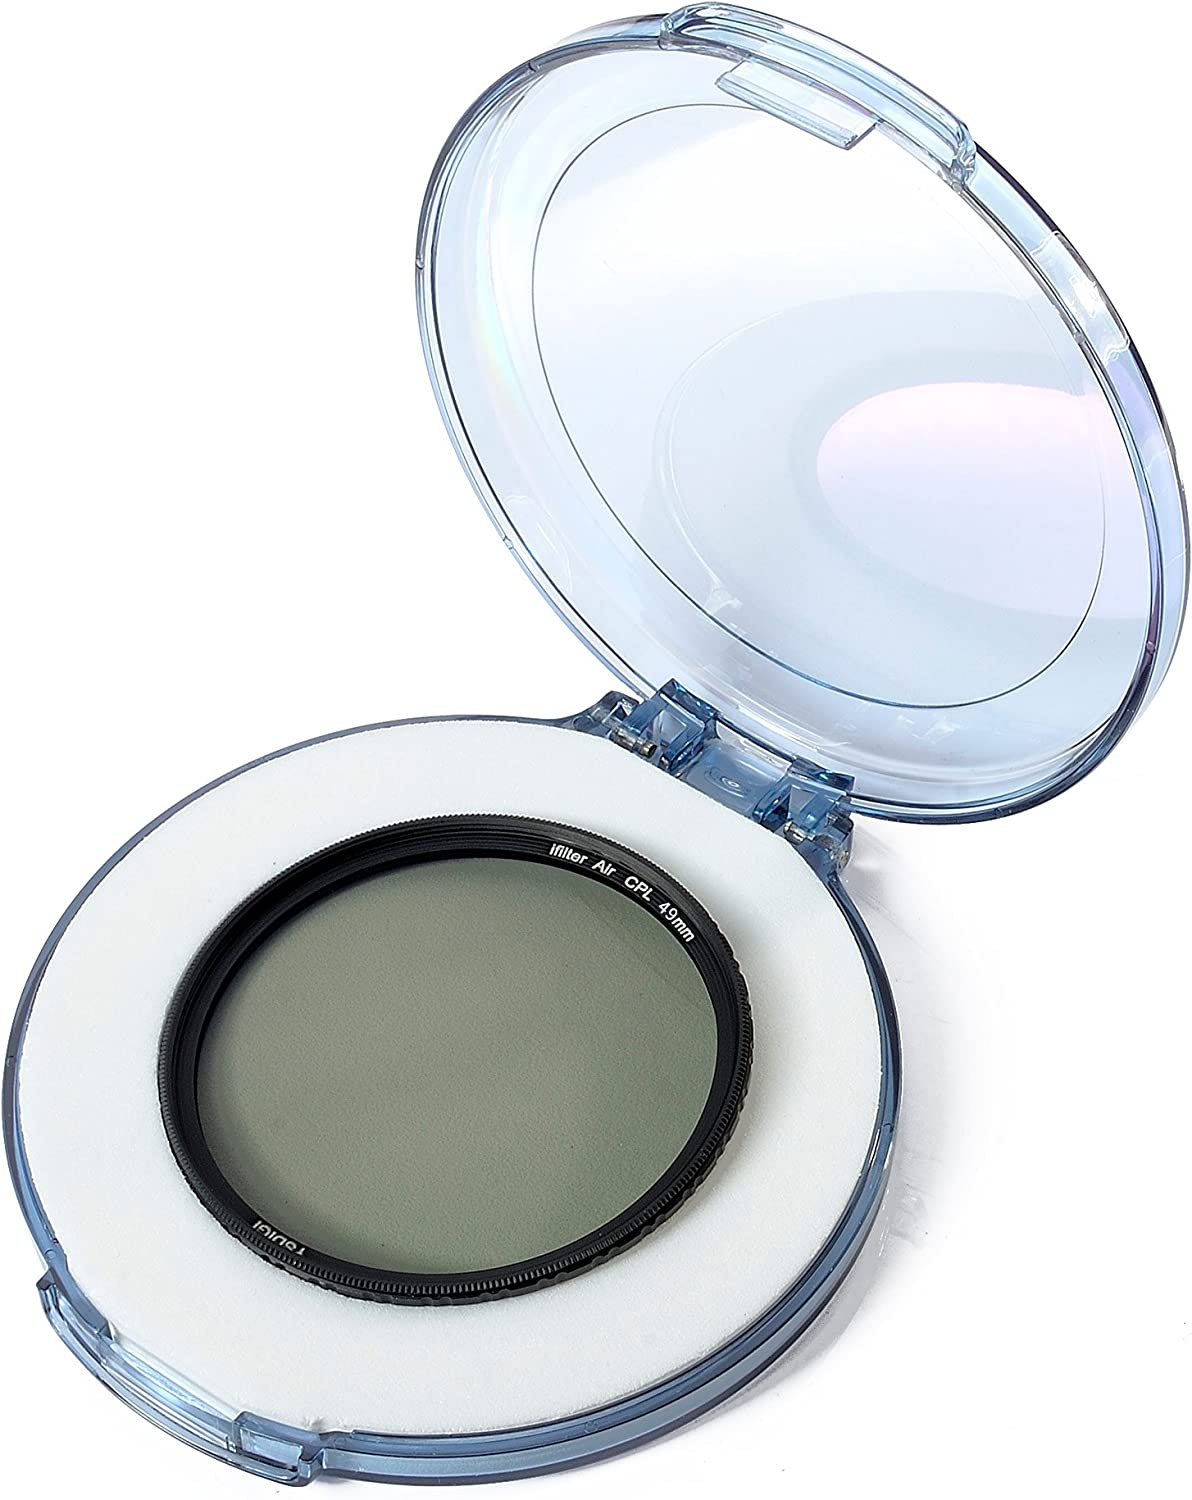 Multi-Coated YSDIGI CPL Protection Lens Filter with Lens Cloth HD CPL Filter for Outdoor Photography. Ultra-Slim 46mm Circular Polarizer Filter Nano Coatings High Definition Schott B270 Glass